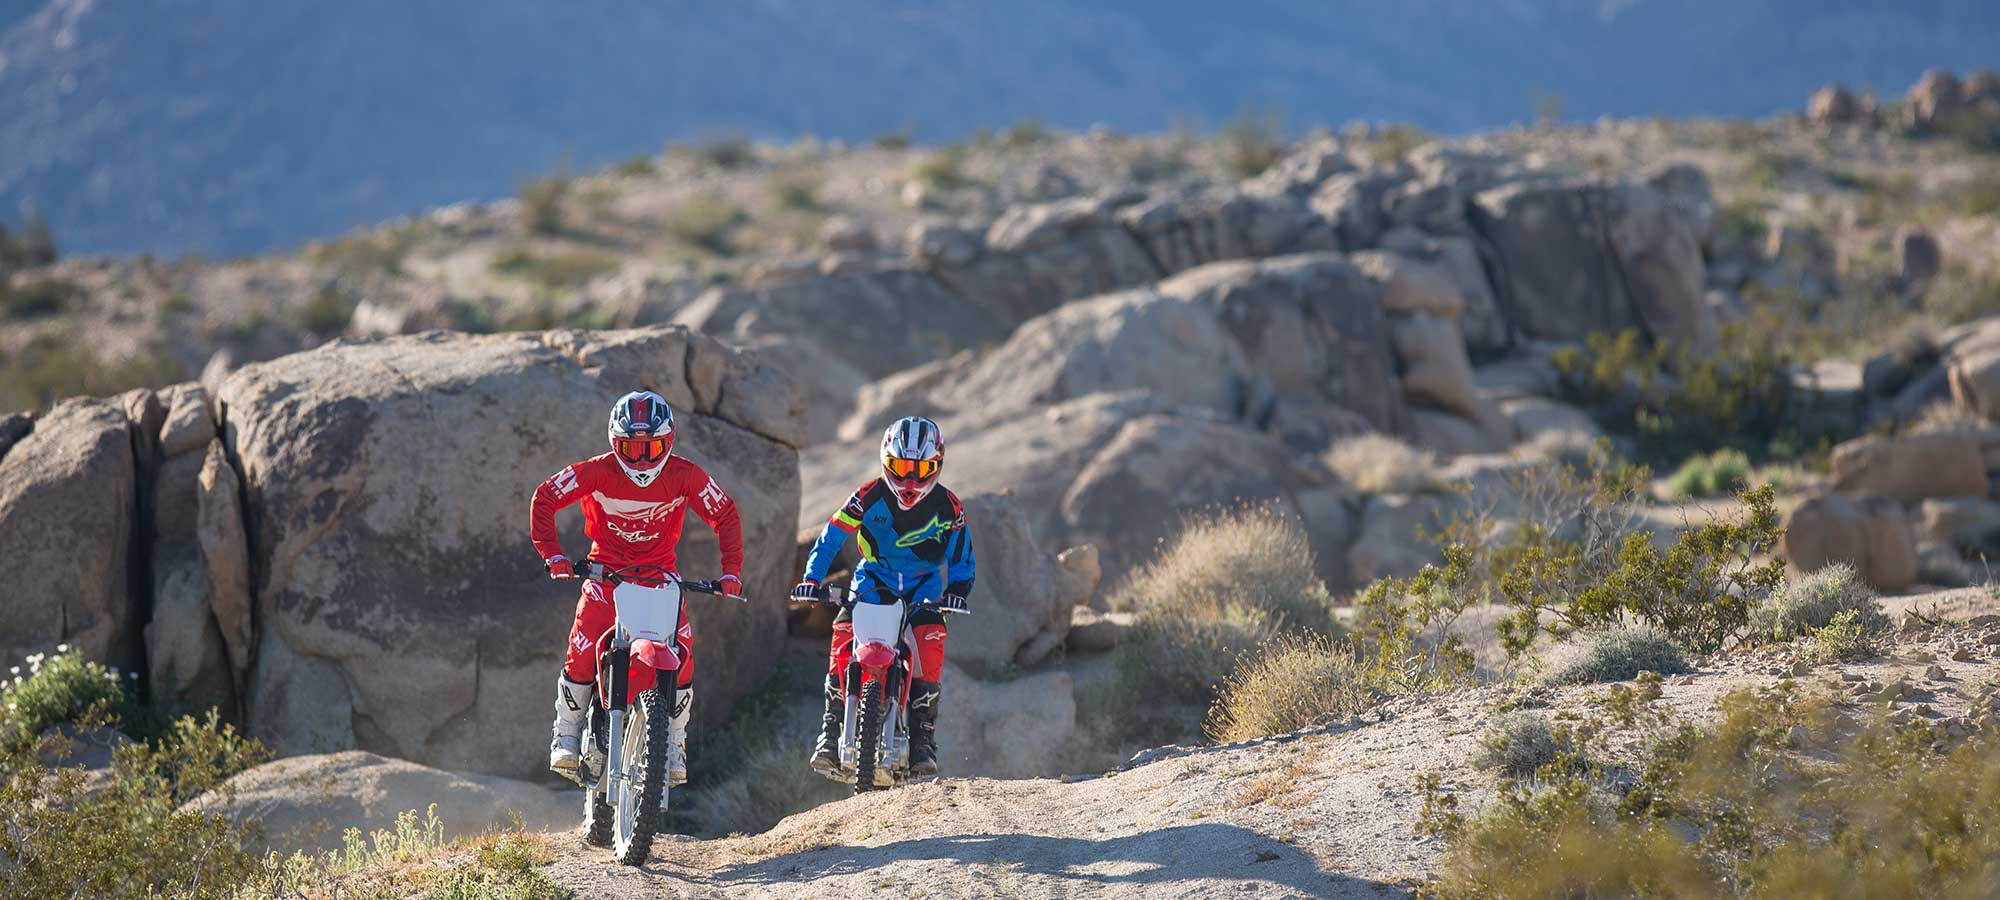 Evan Allen and Jake Allen ride the 2019 Honda CRF125F and CRF250F.